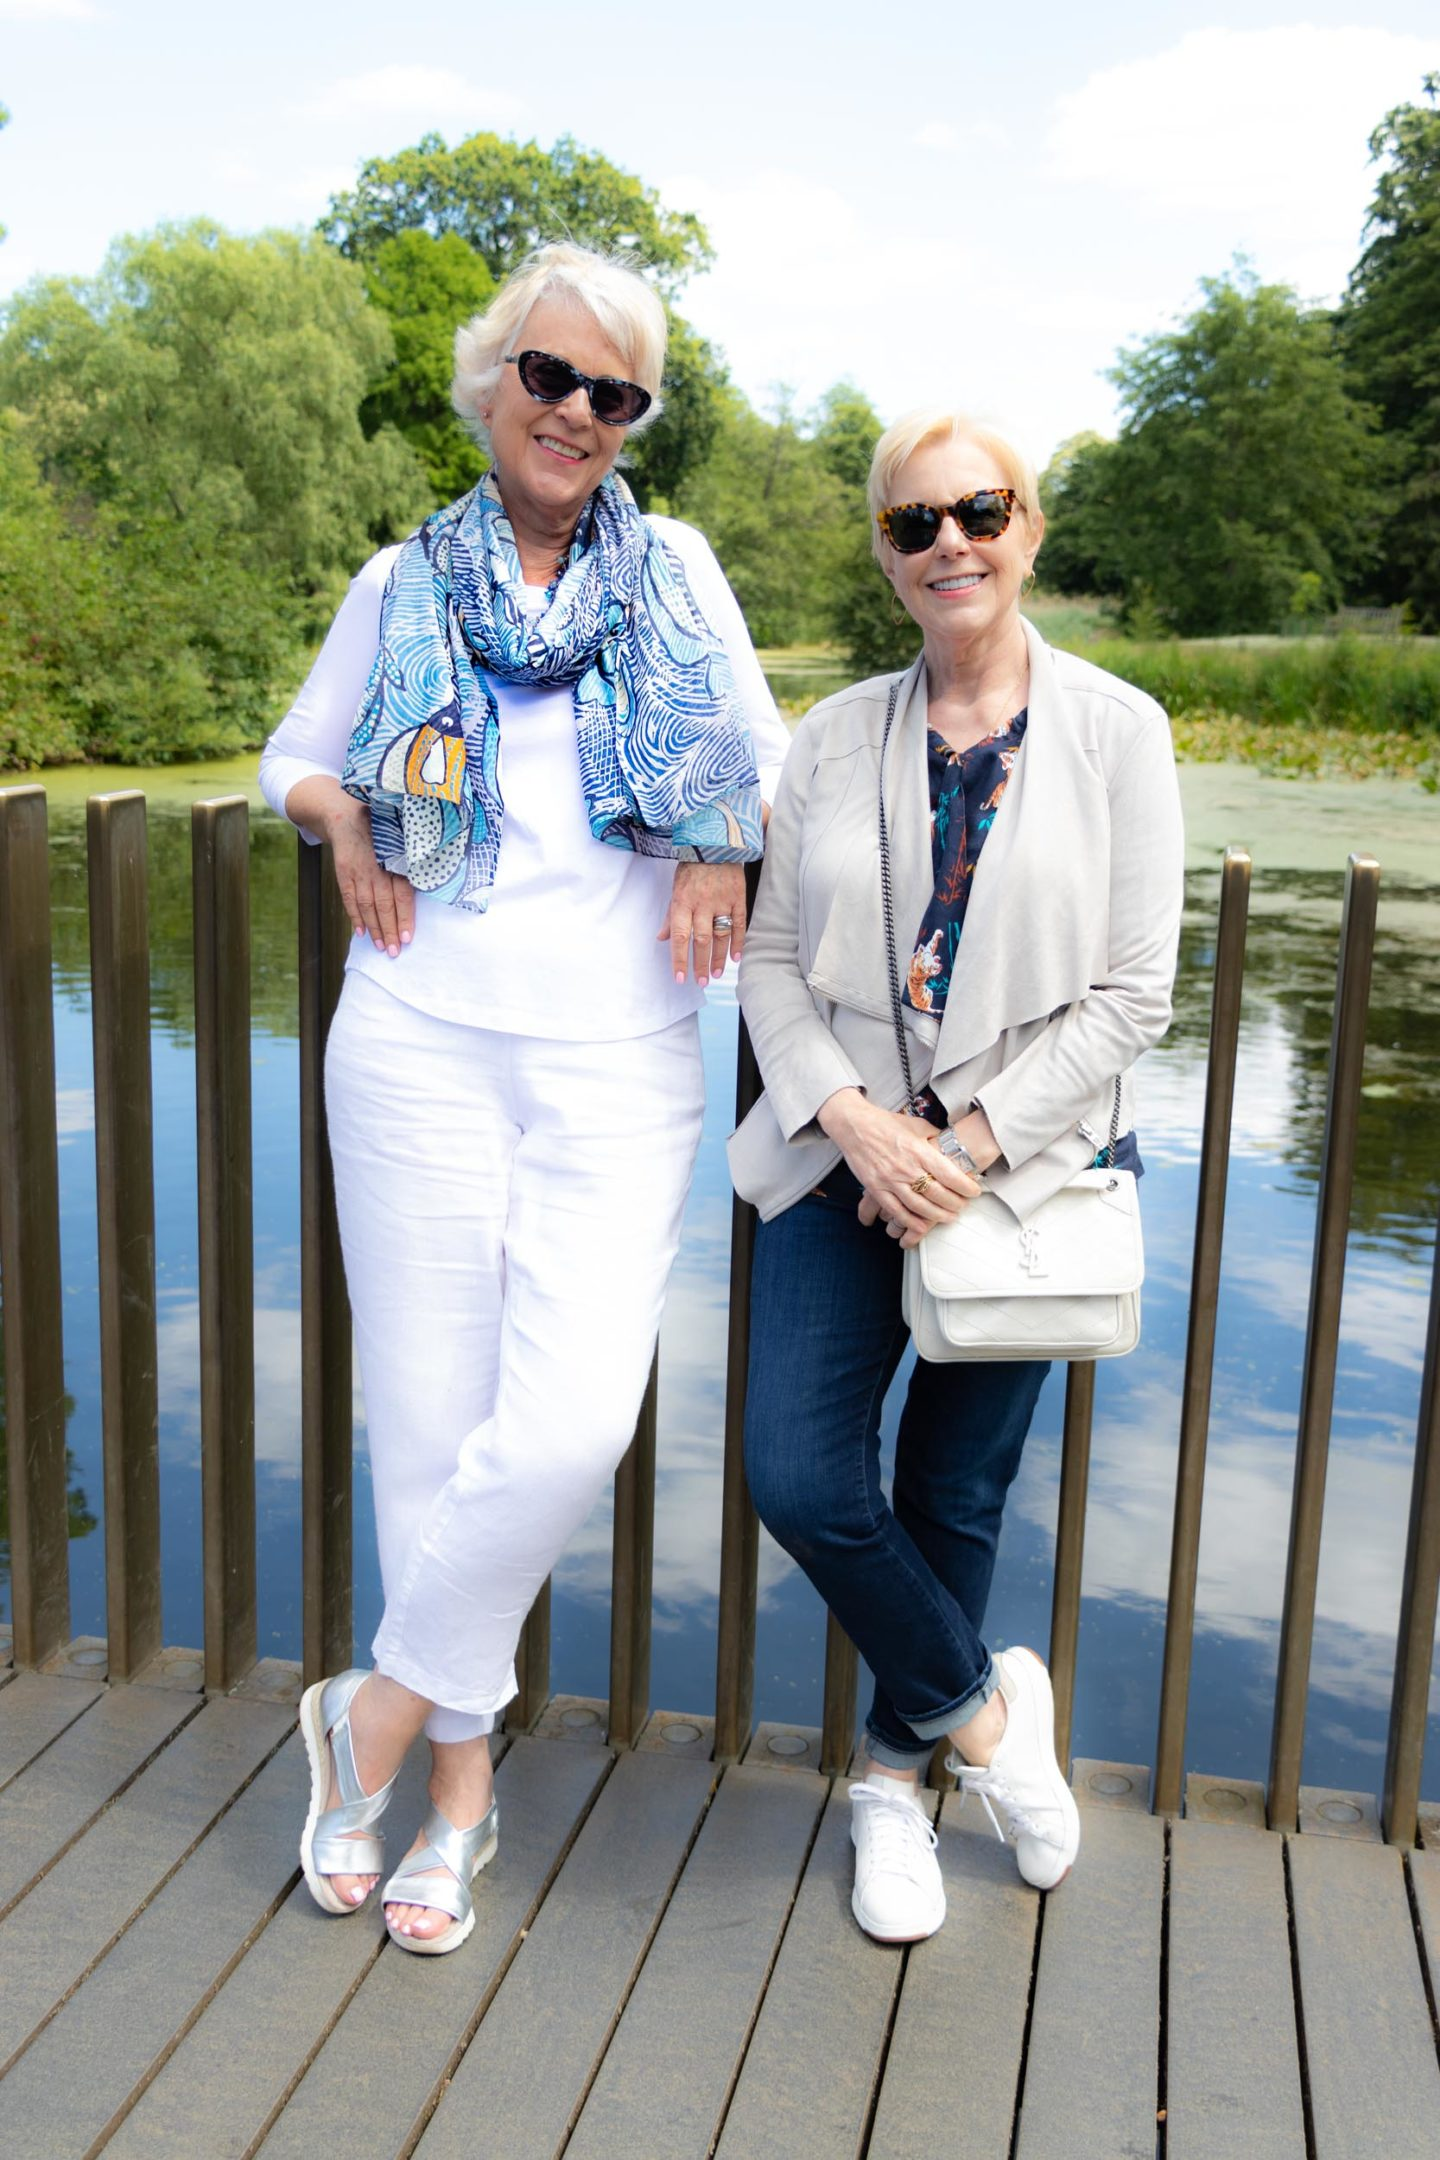 What to wear for a summer visit to Kew Gardens